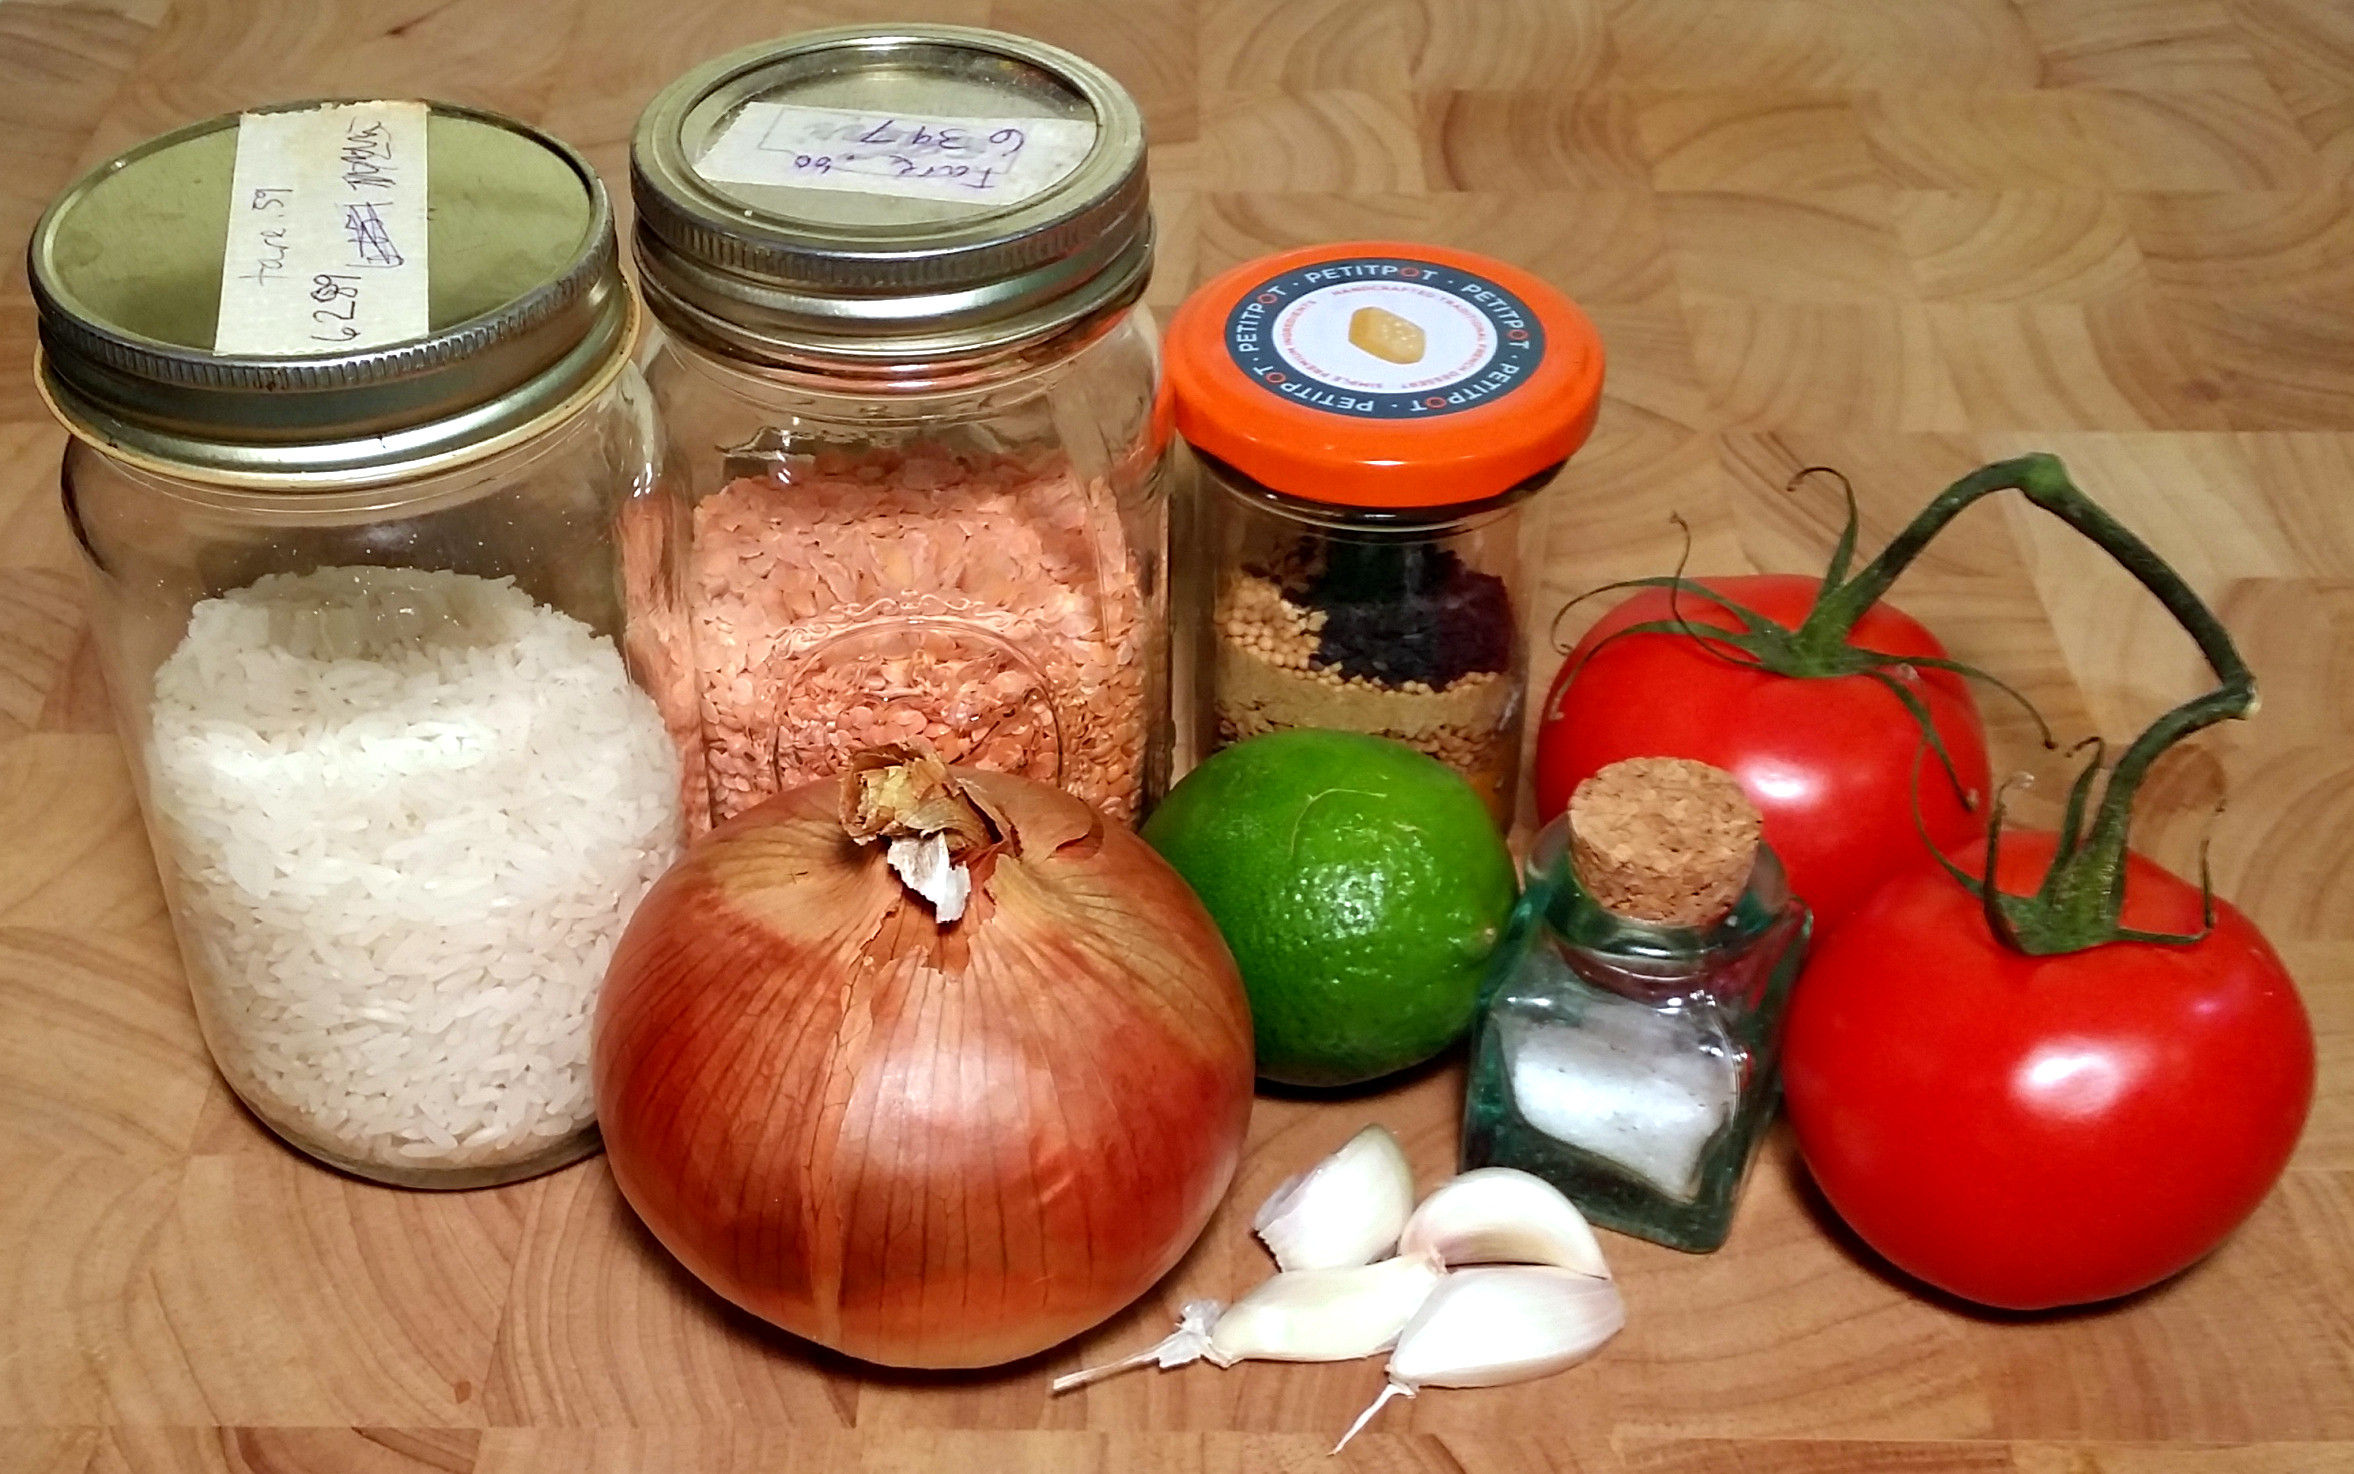 Diy zero waste meal kits the zero waste chef kit components solutioingenieria Image collections